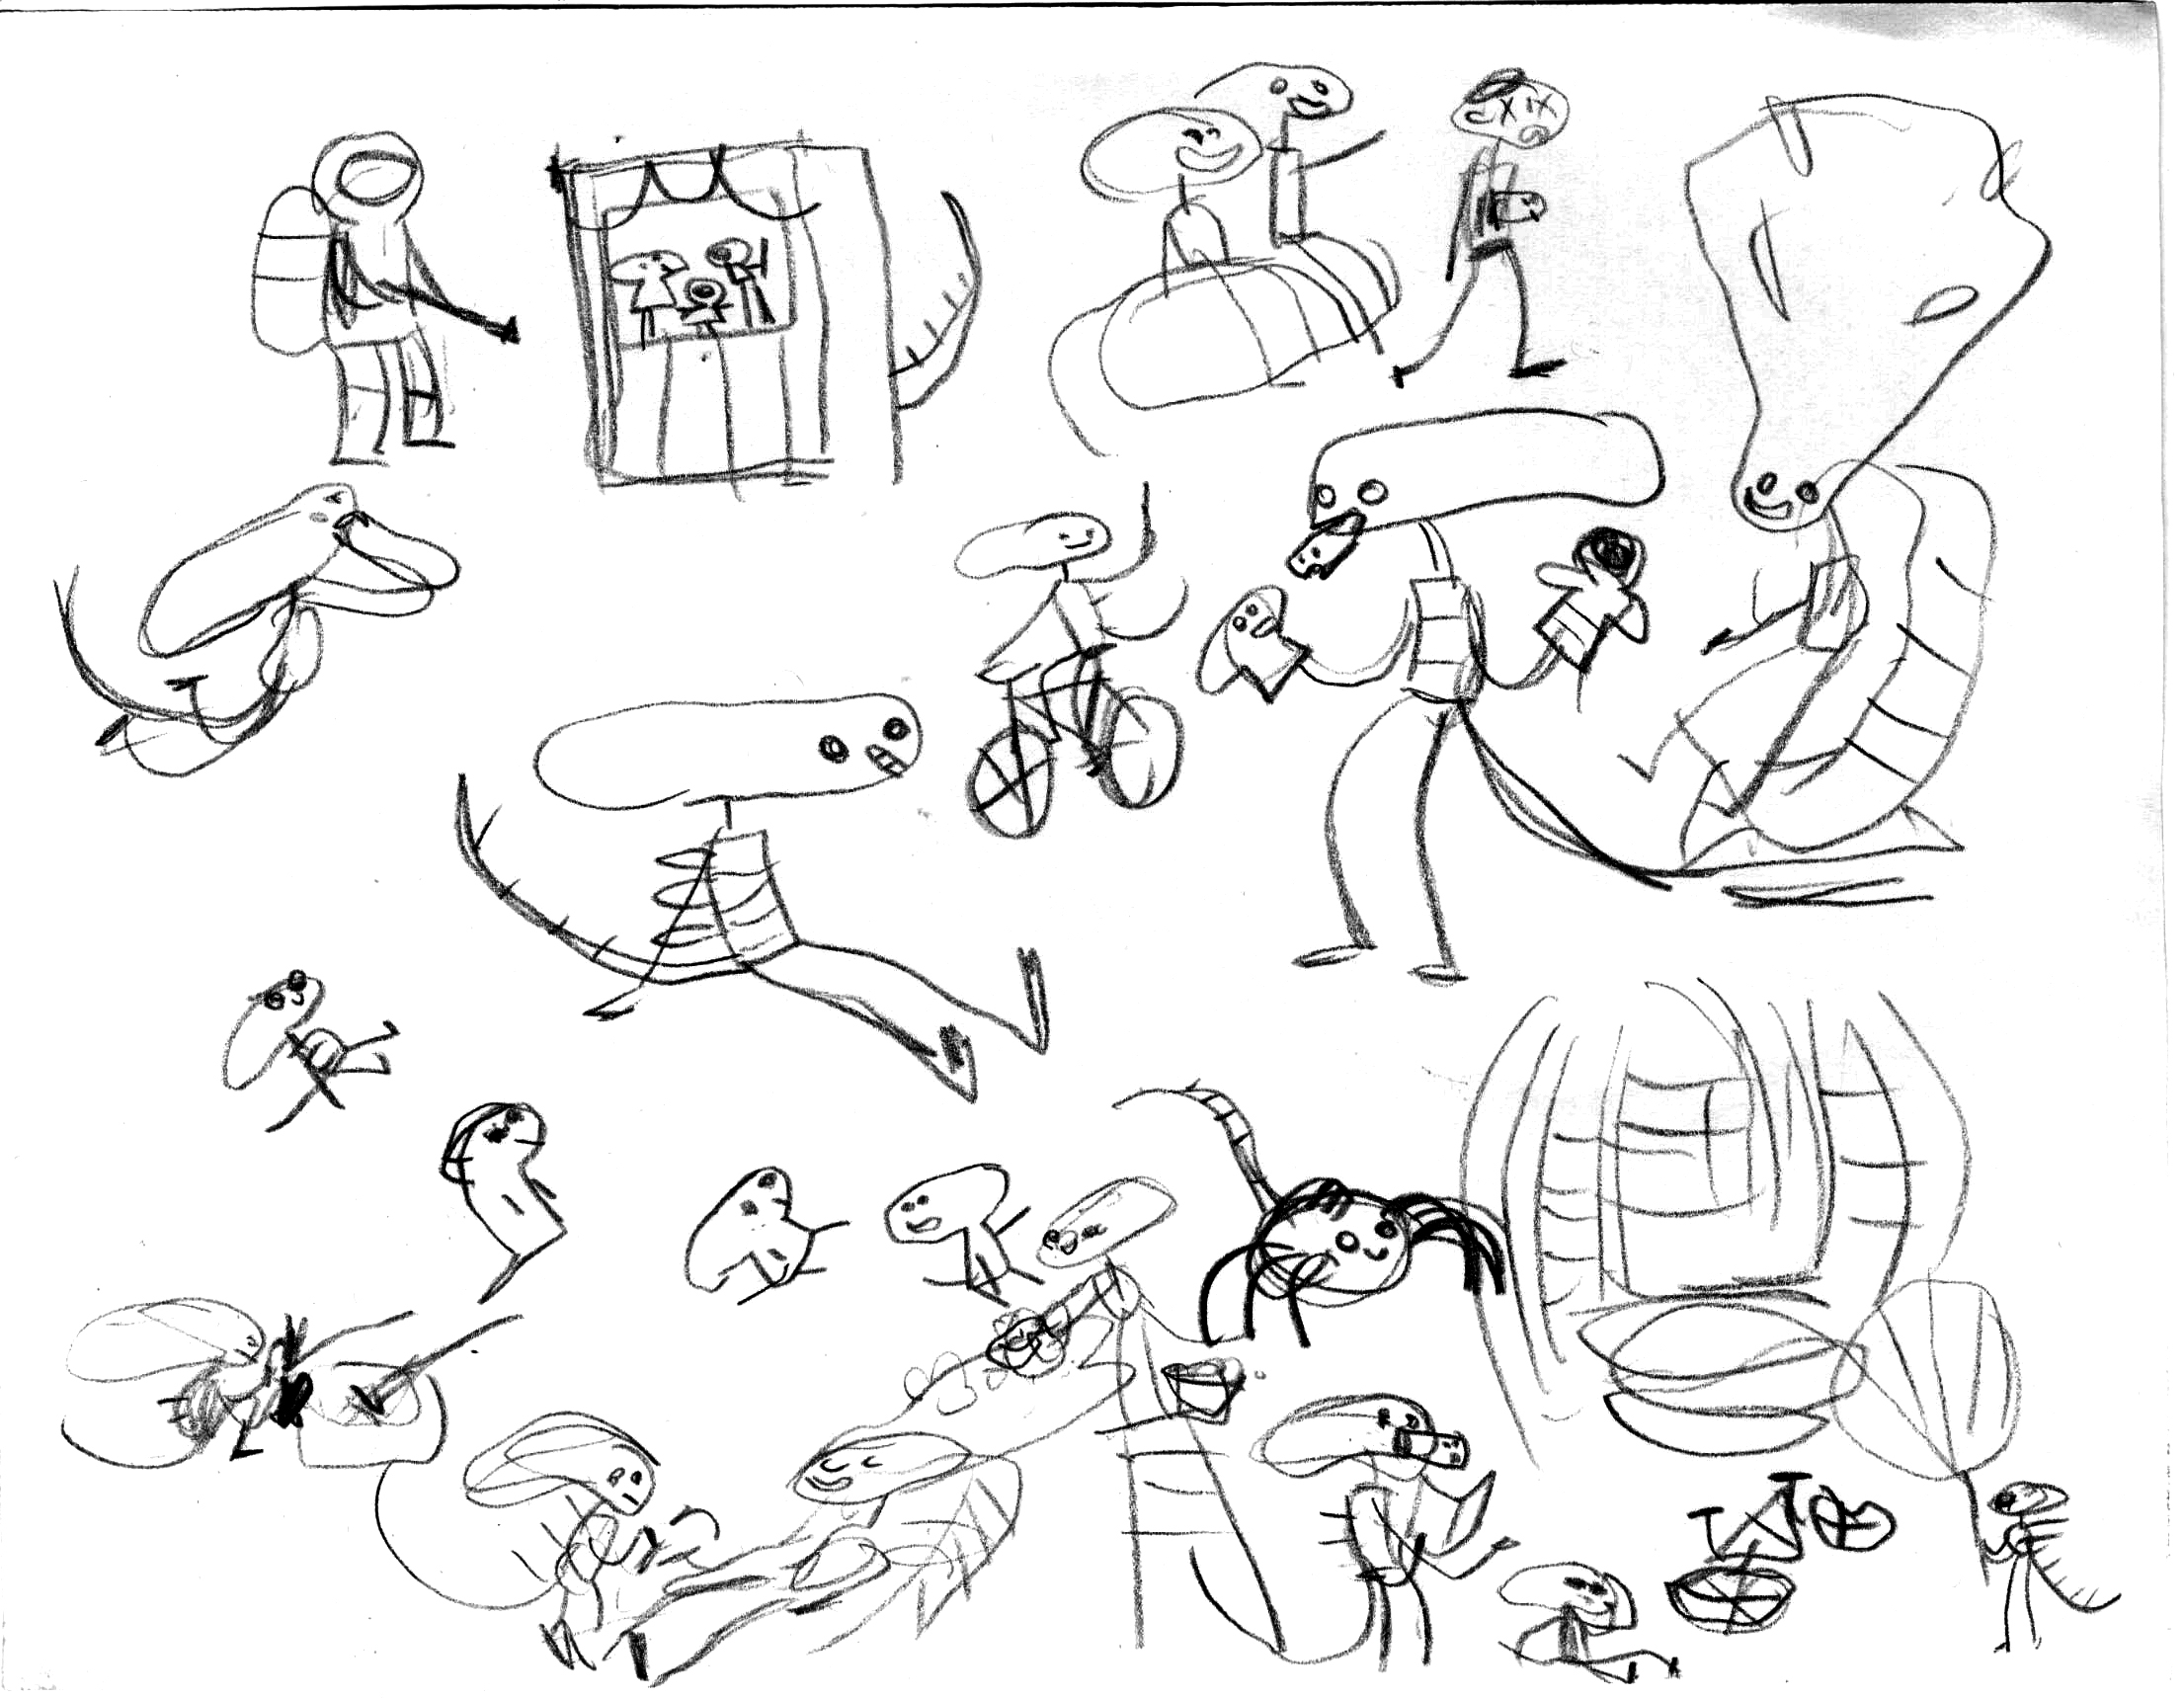 Just doodling aliens enjoying their days and nights.